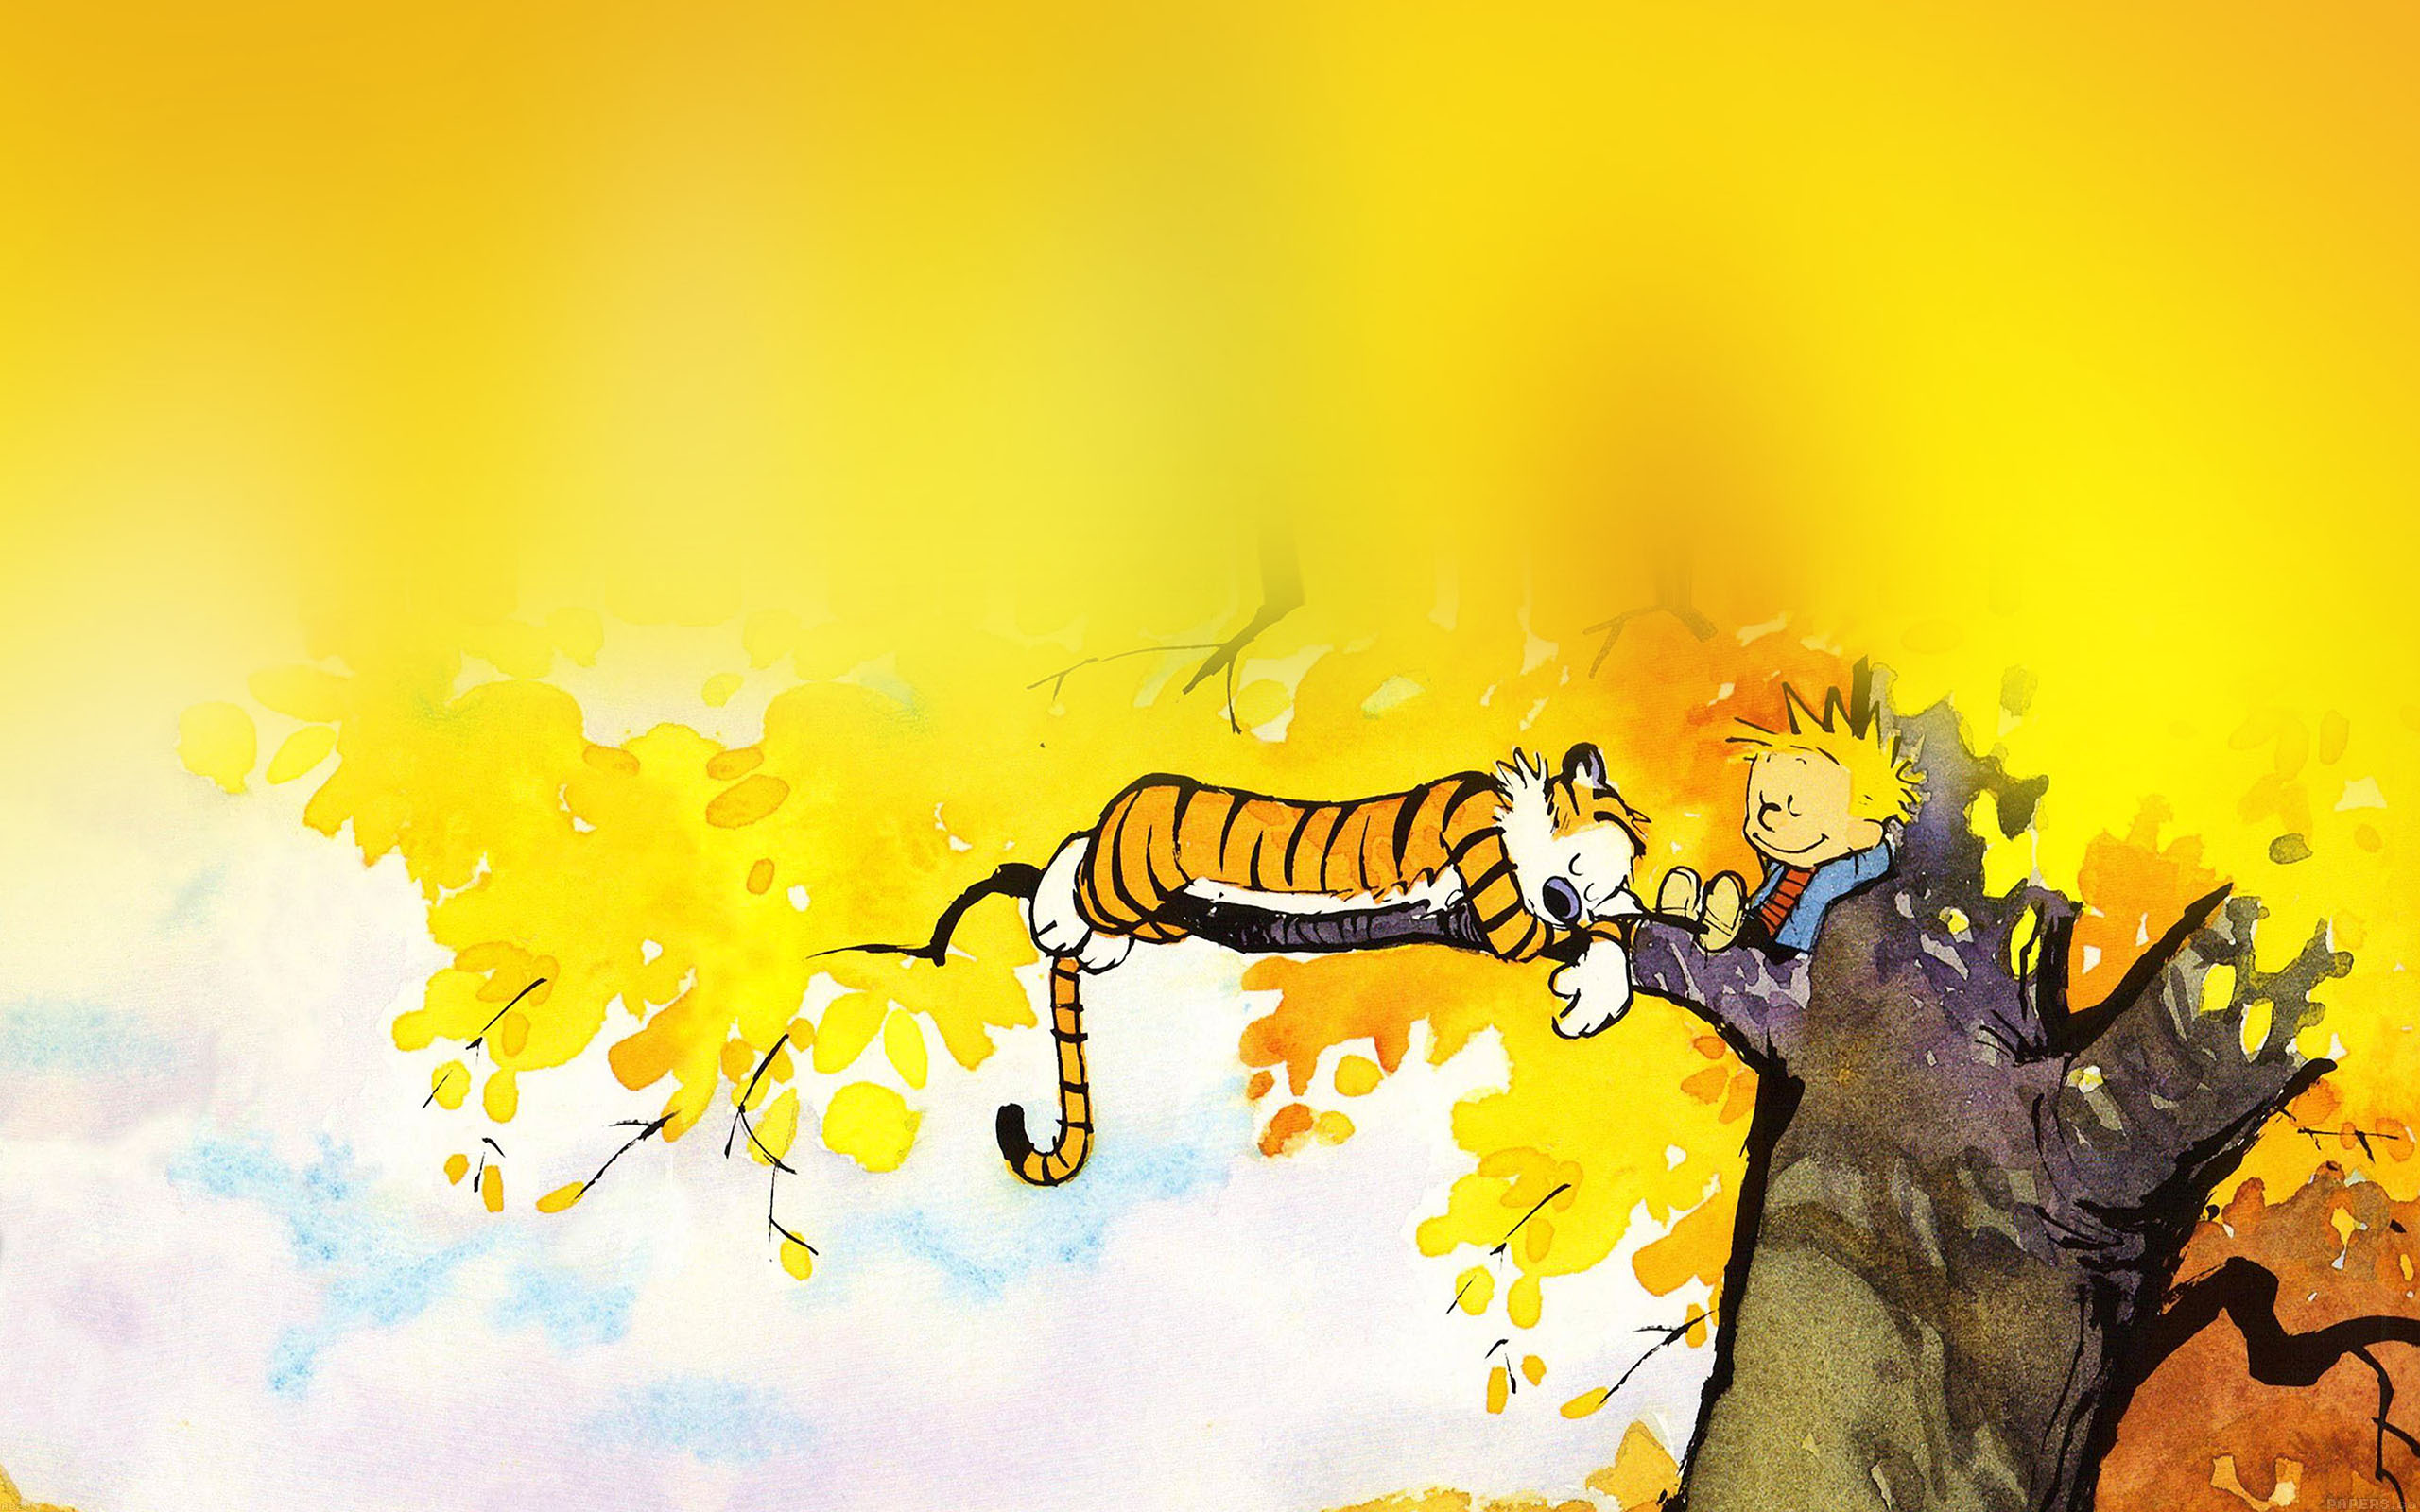 ab20-wallpaper-calvin-and-hobbes-nap-illust